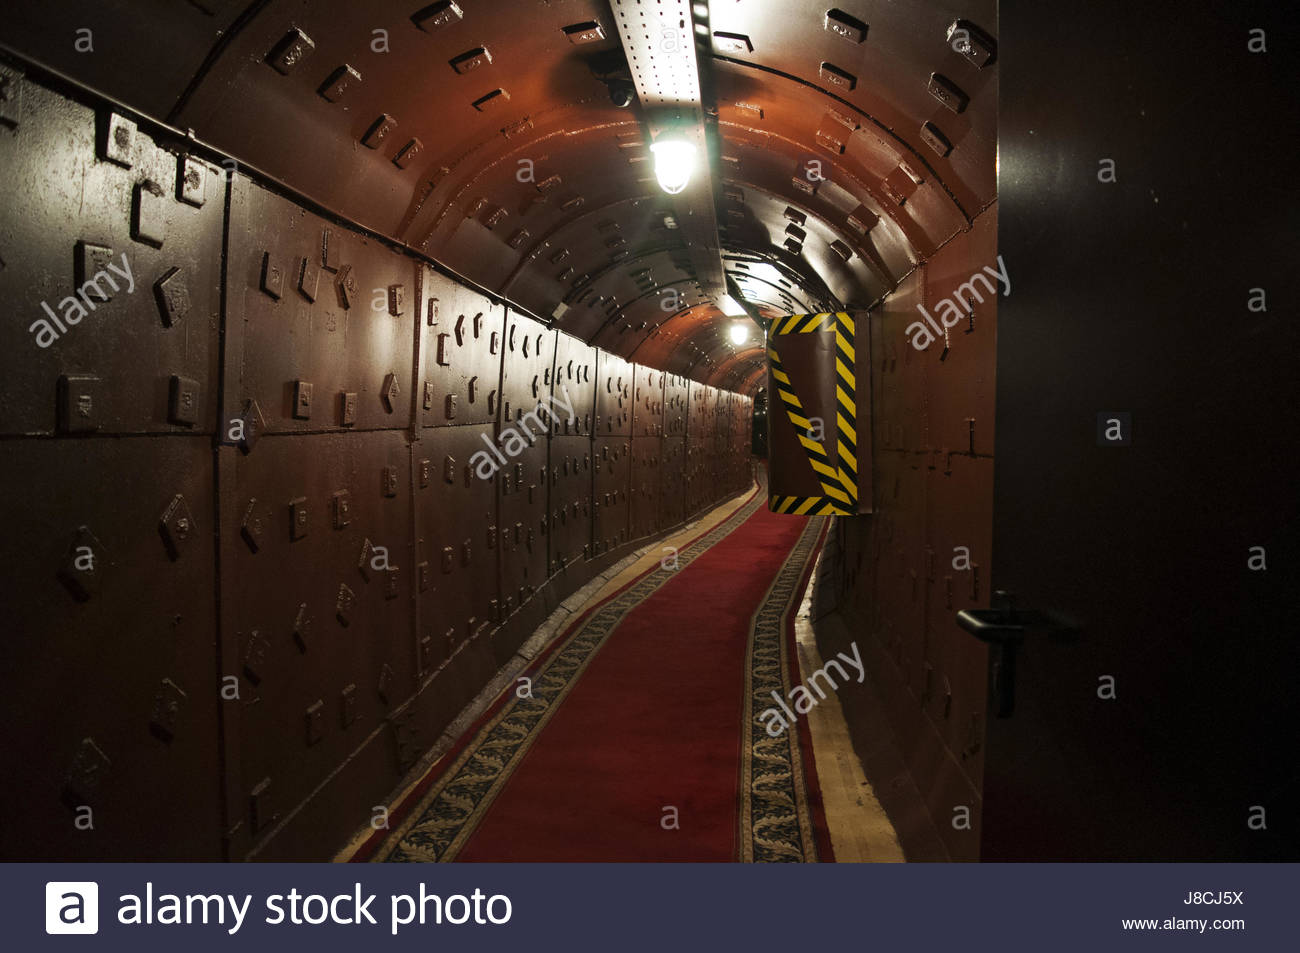 Cold War Tunnel Gjirokastra, Cold War Tunnel Sign in Gjirokaster Stock Photo, Royalty Free ...